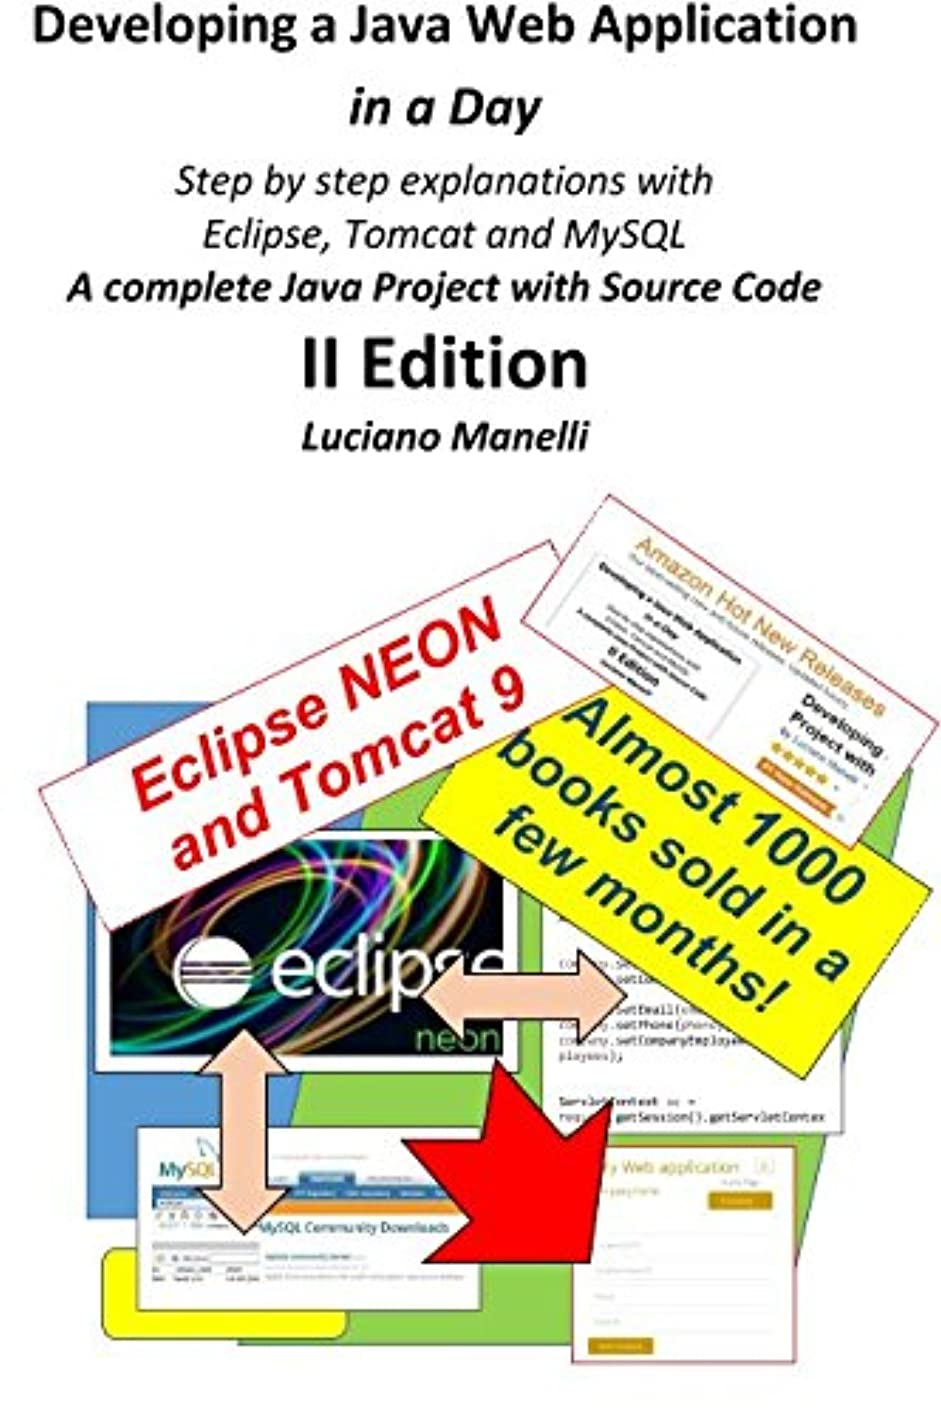 コンパス機械的スケジュールDeveloping a Java Web Application in a Day: Step by step explanations with  Eclipse, Tomcat, MySQL - A complete Java Project with Source Code (Java Web Programming)